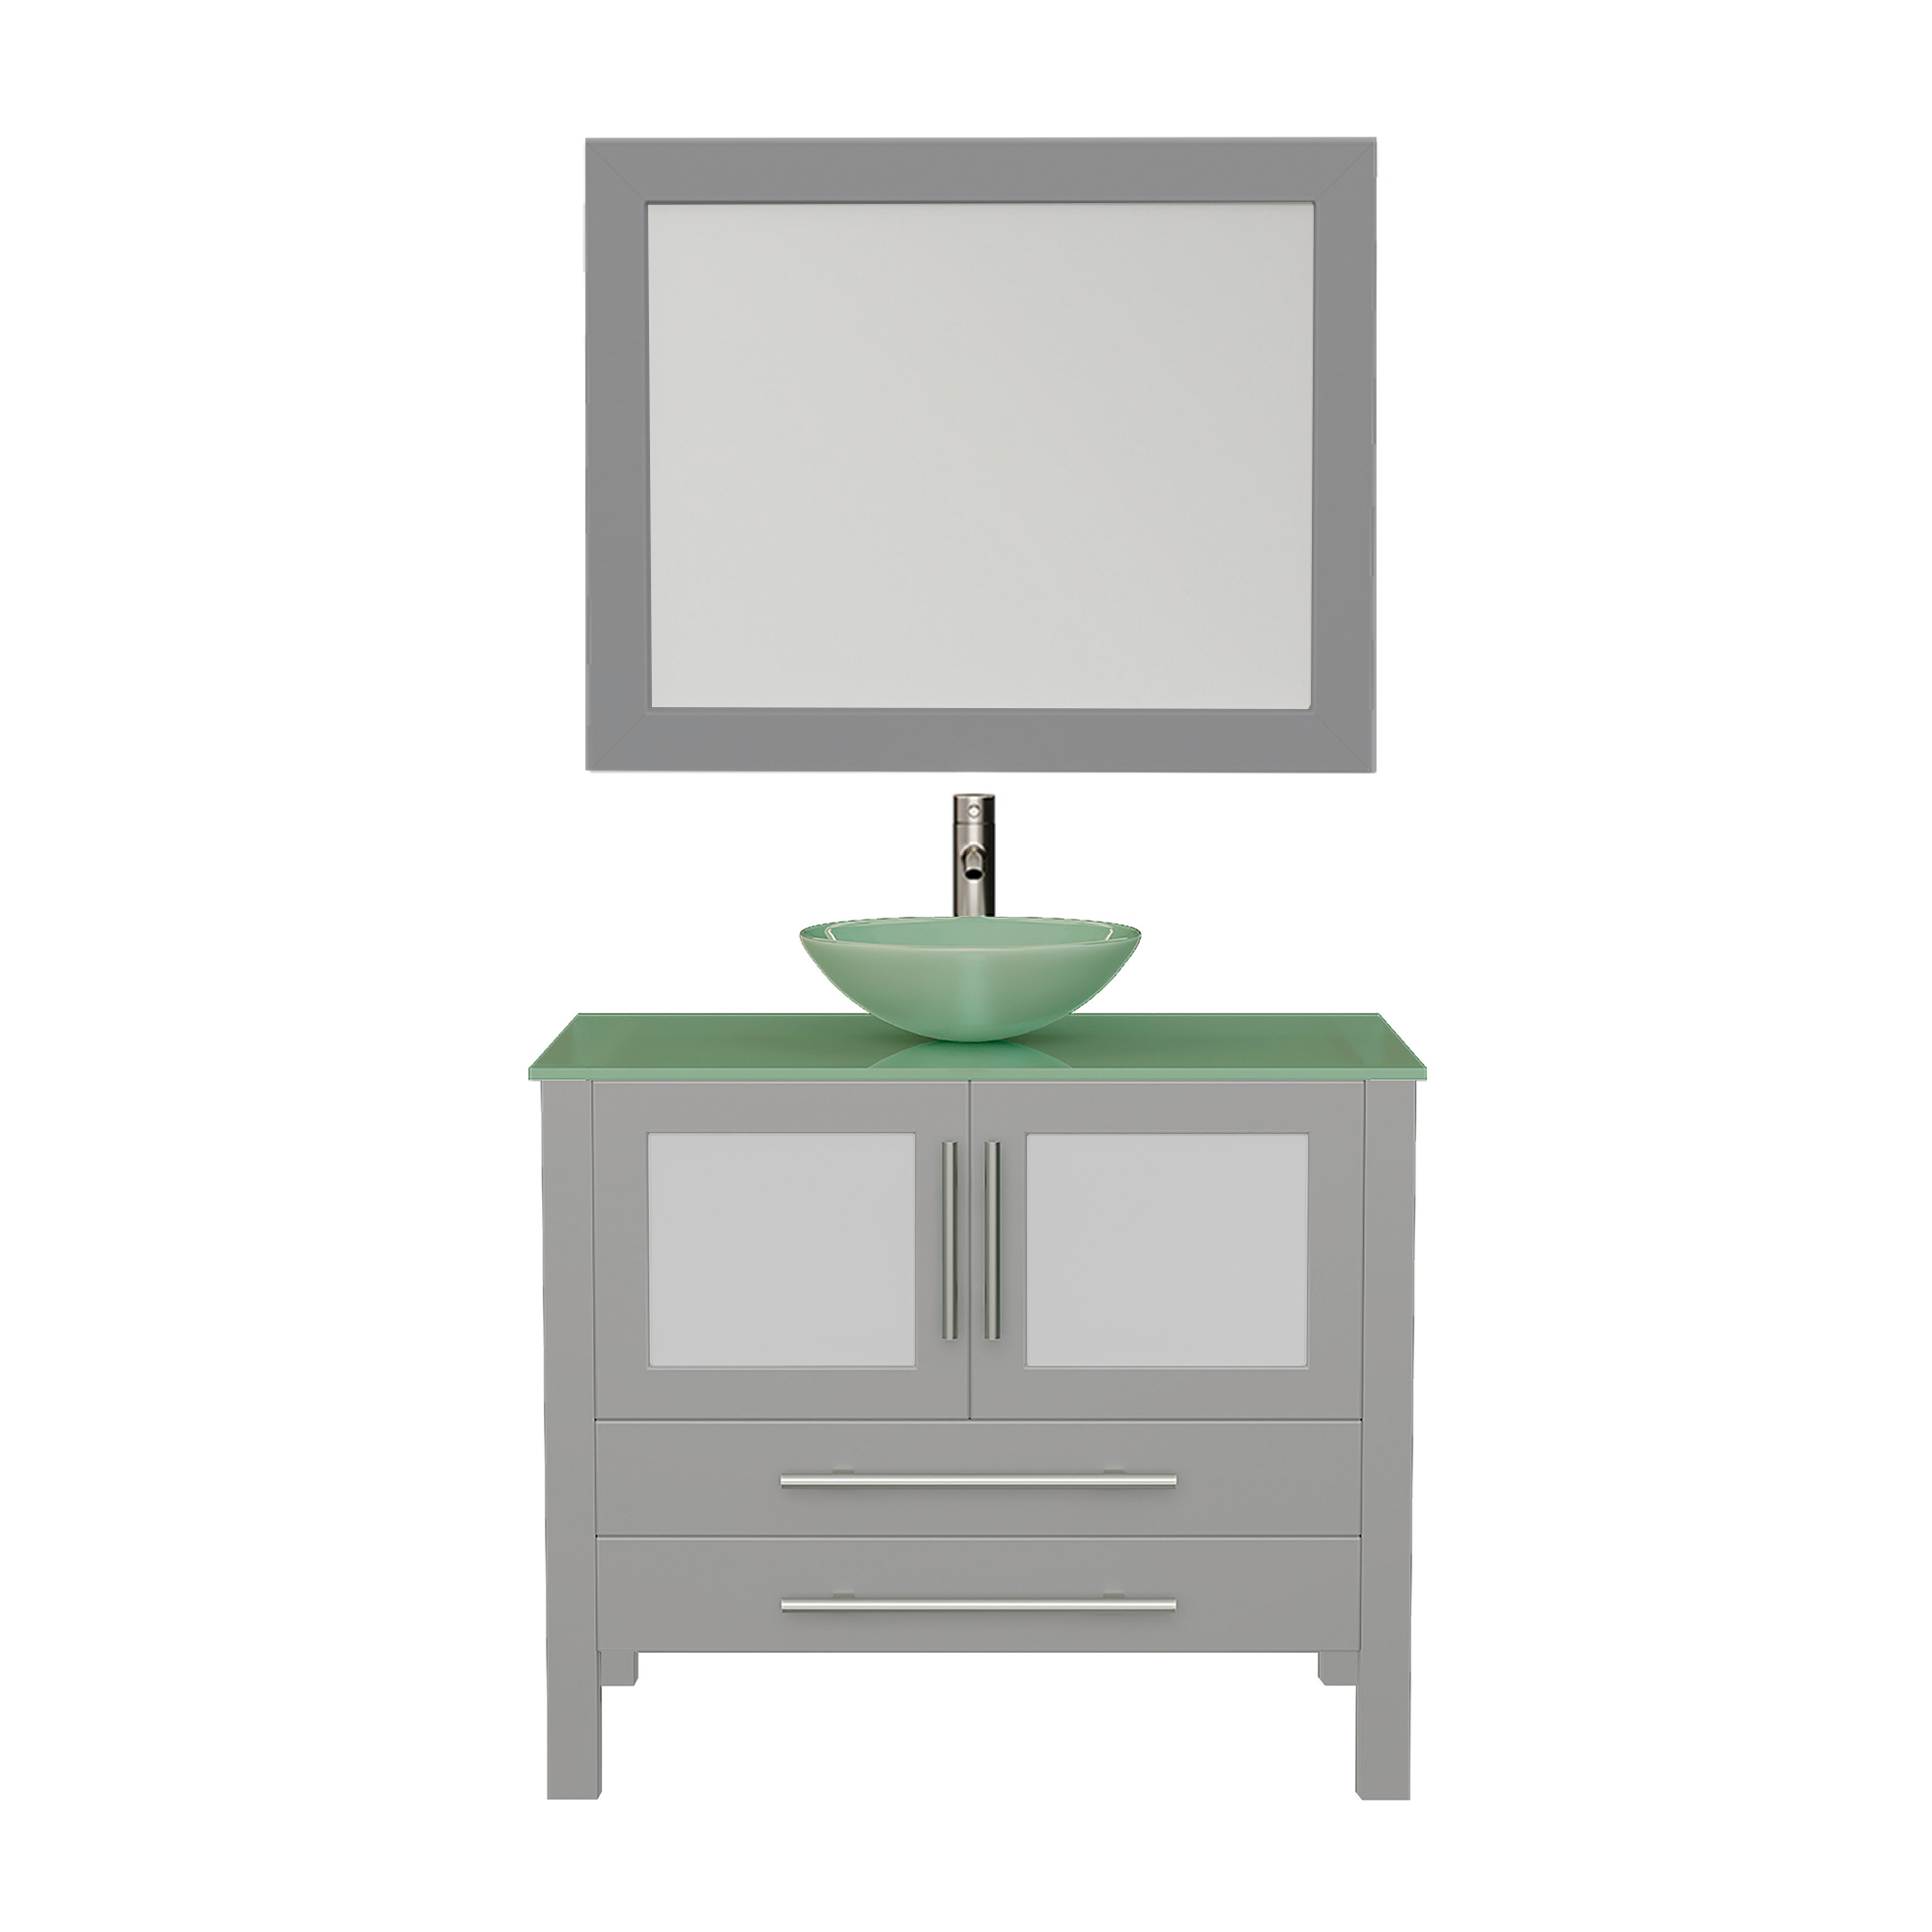 811BG Gray Vanity Set w/Brushed Nickel Faucet